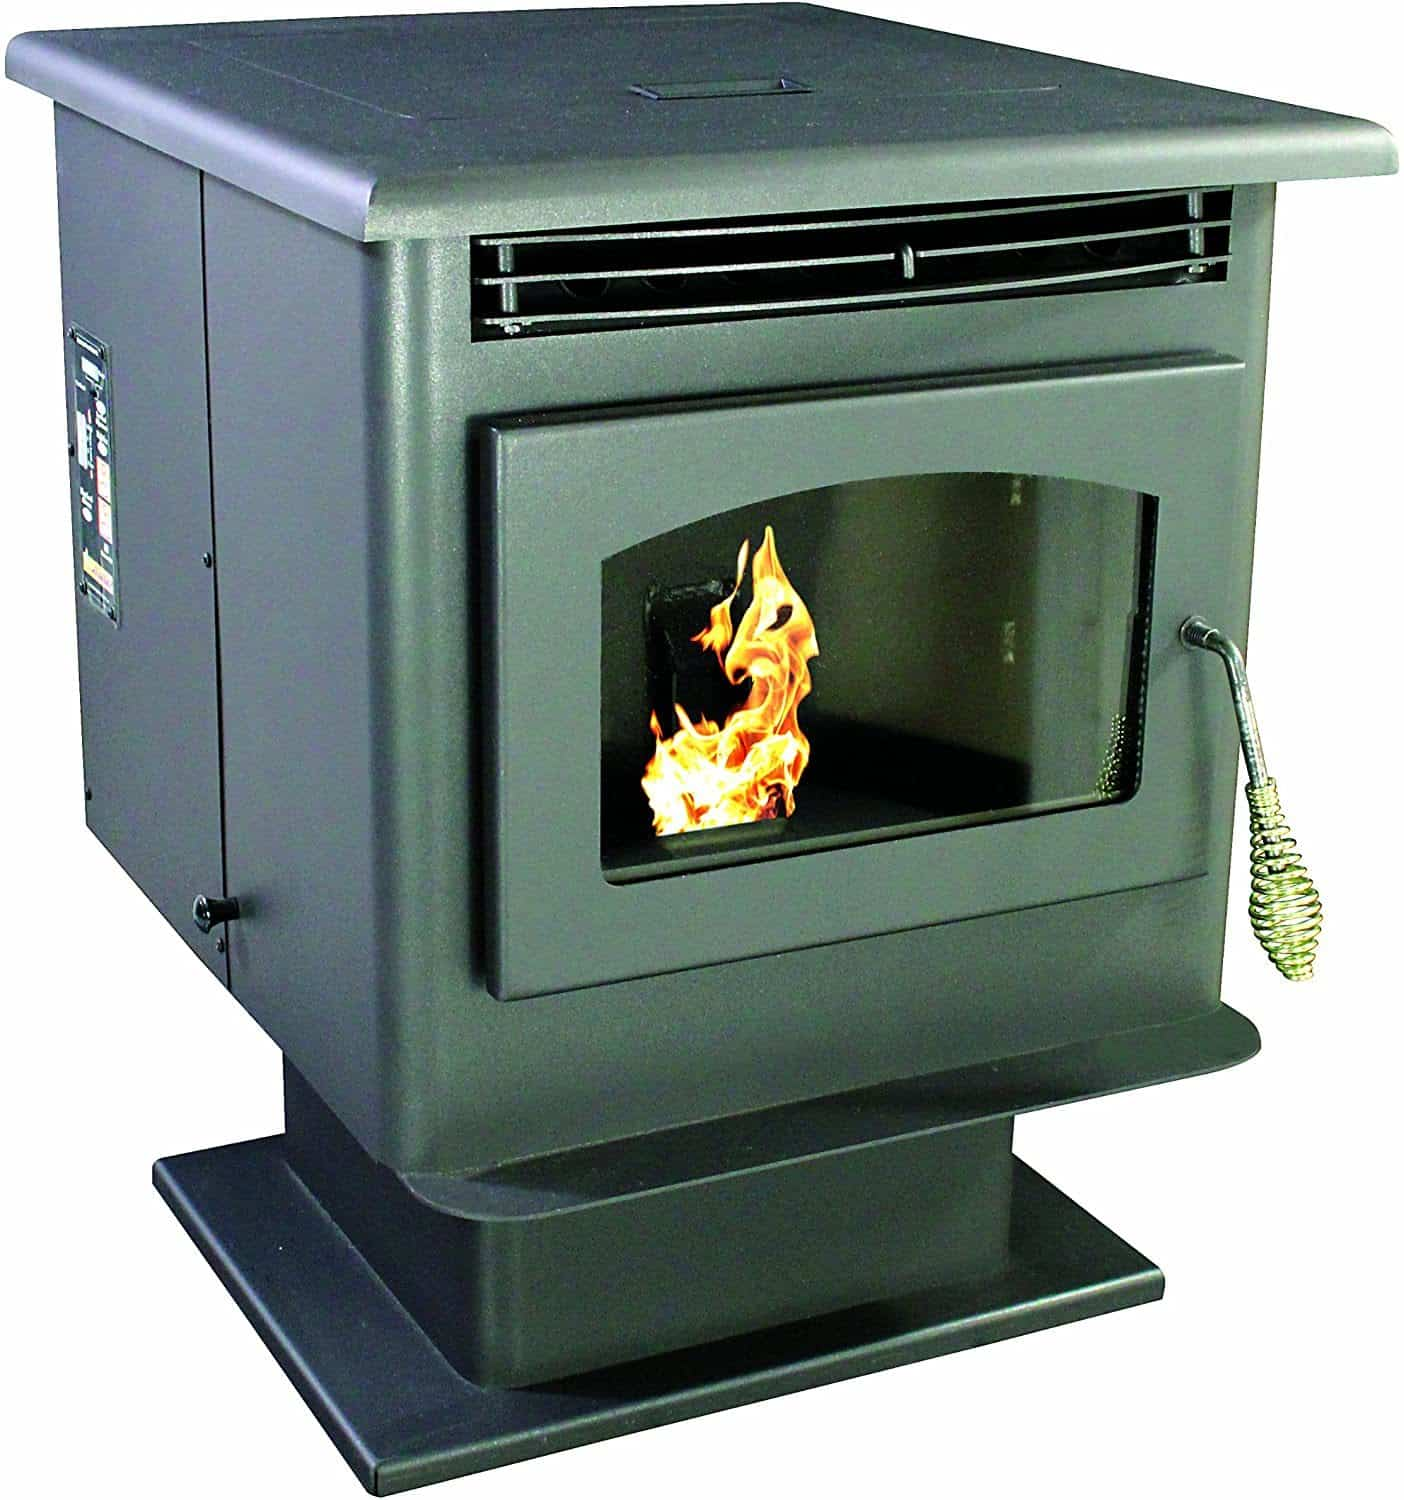 US Stove 5040 Small Pellet Stove